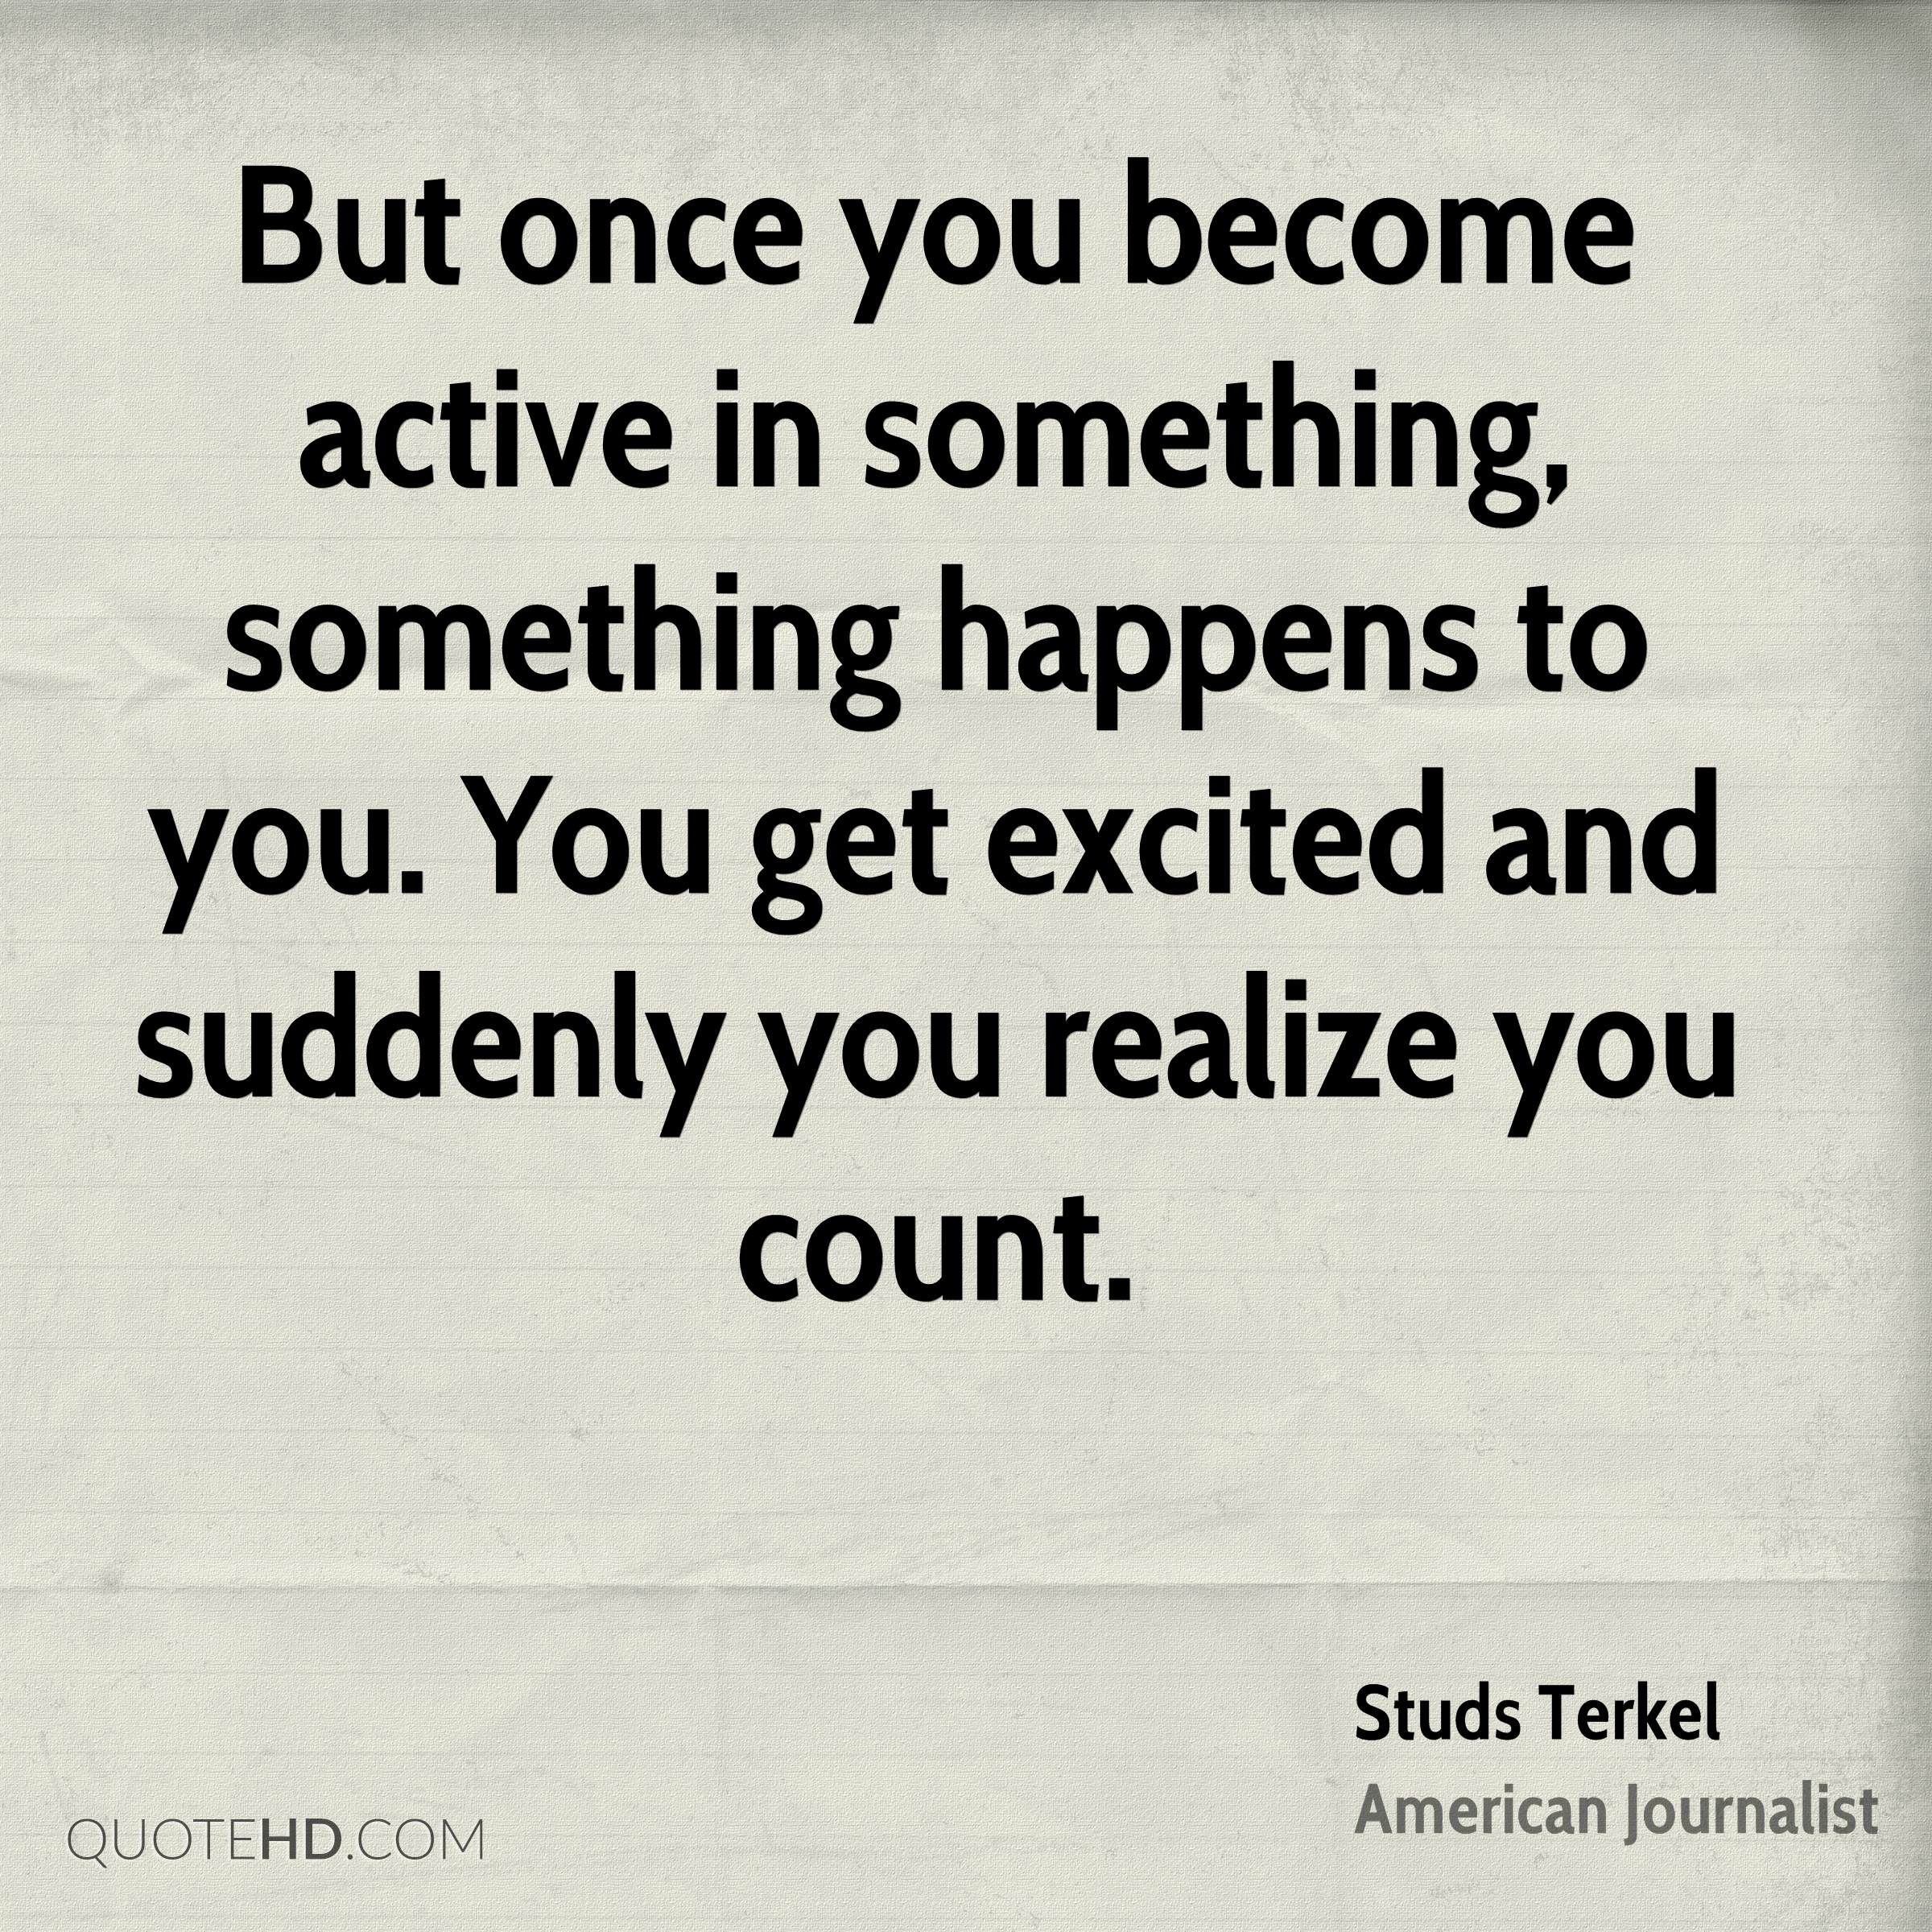 But once you become active in something, something happens to you. You get excited and suddenly you realize you count.